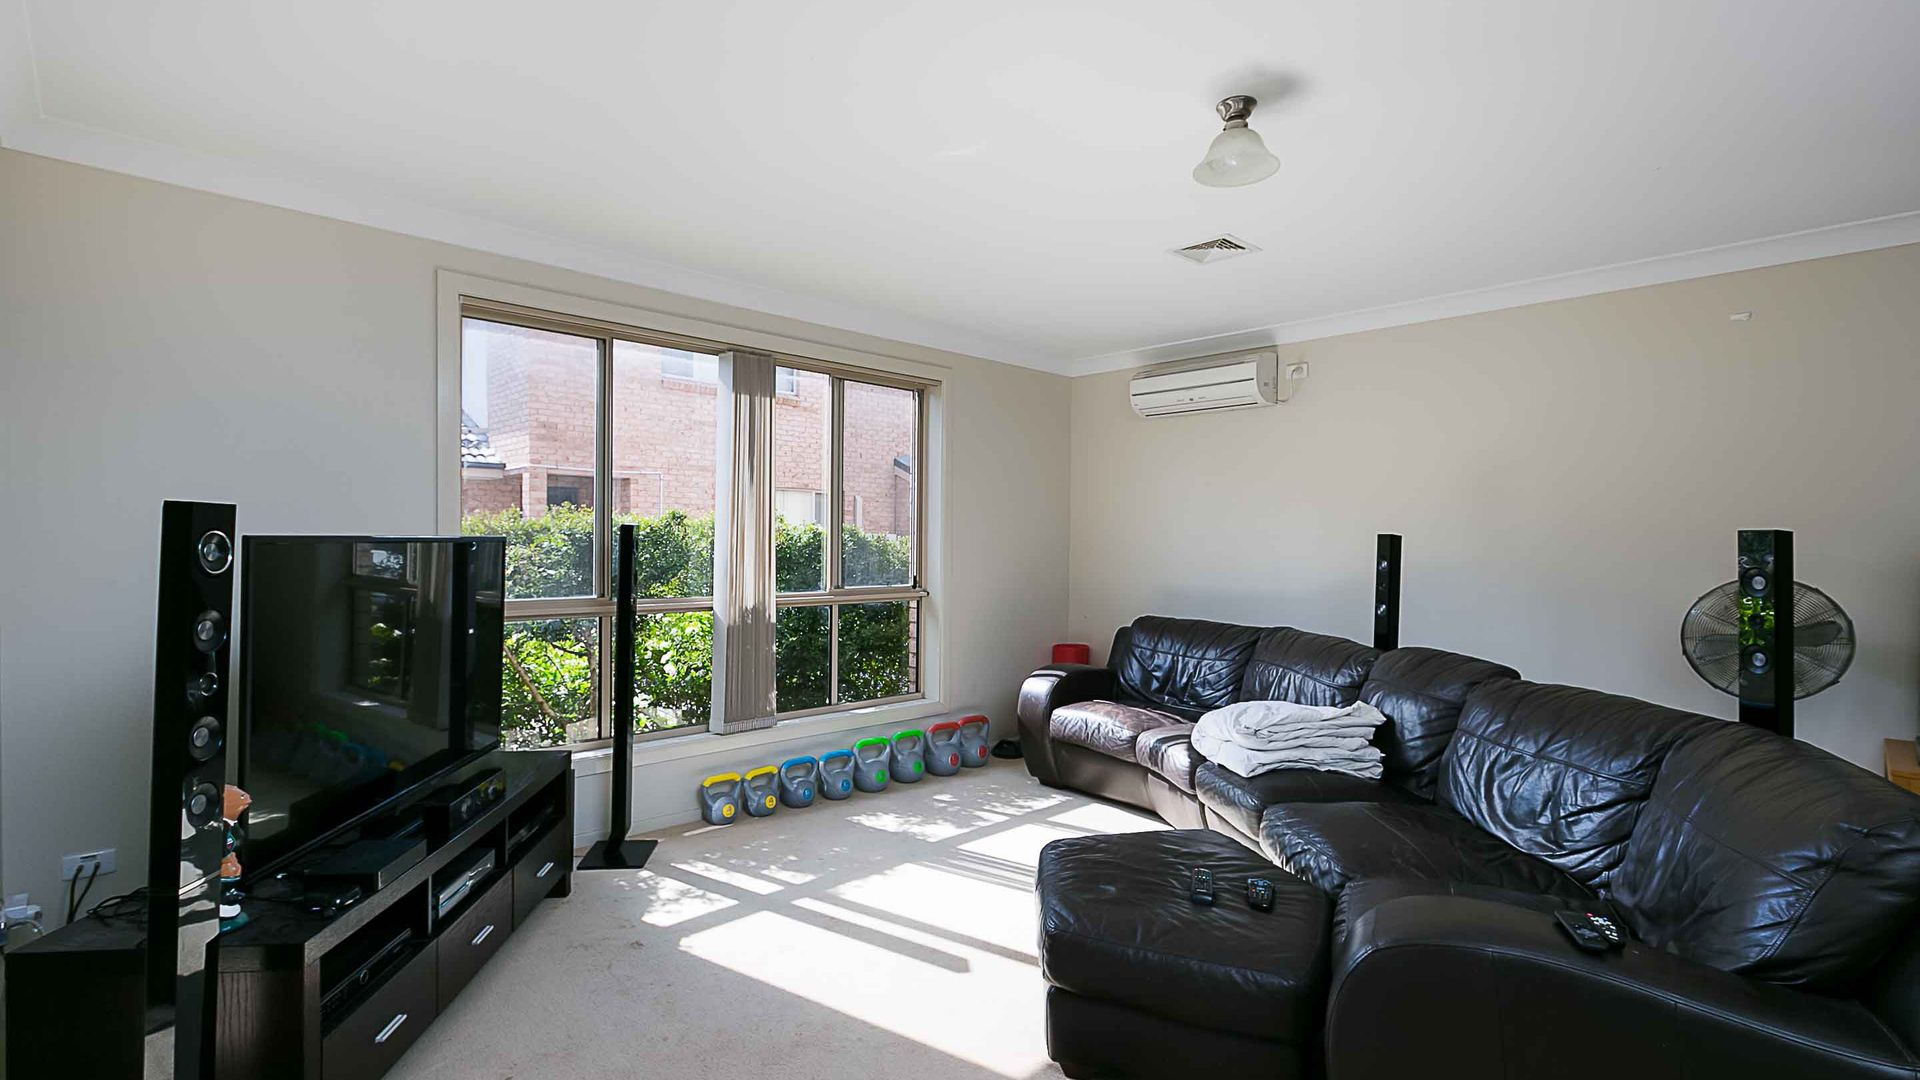 2/19-20 Middle Tree Close, Hamlyn Terrace NSW 2259, Image 2